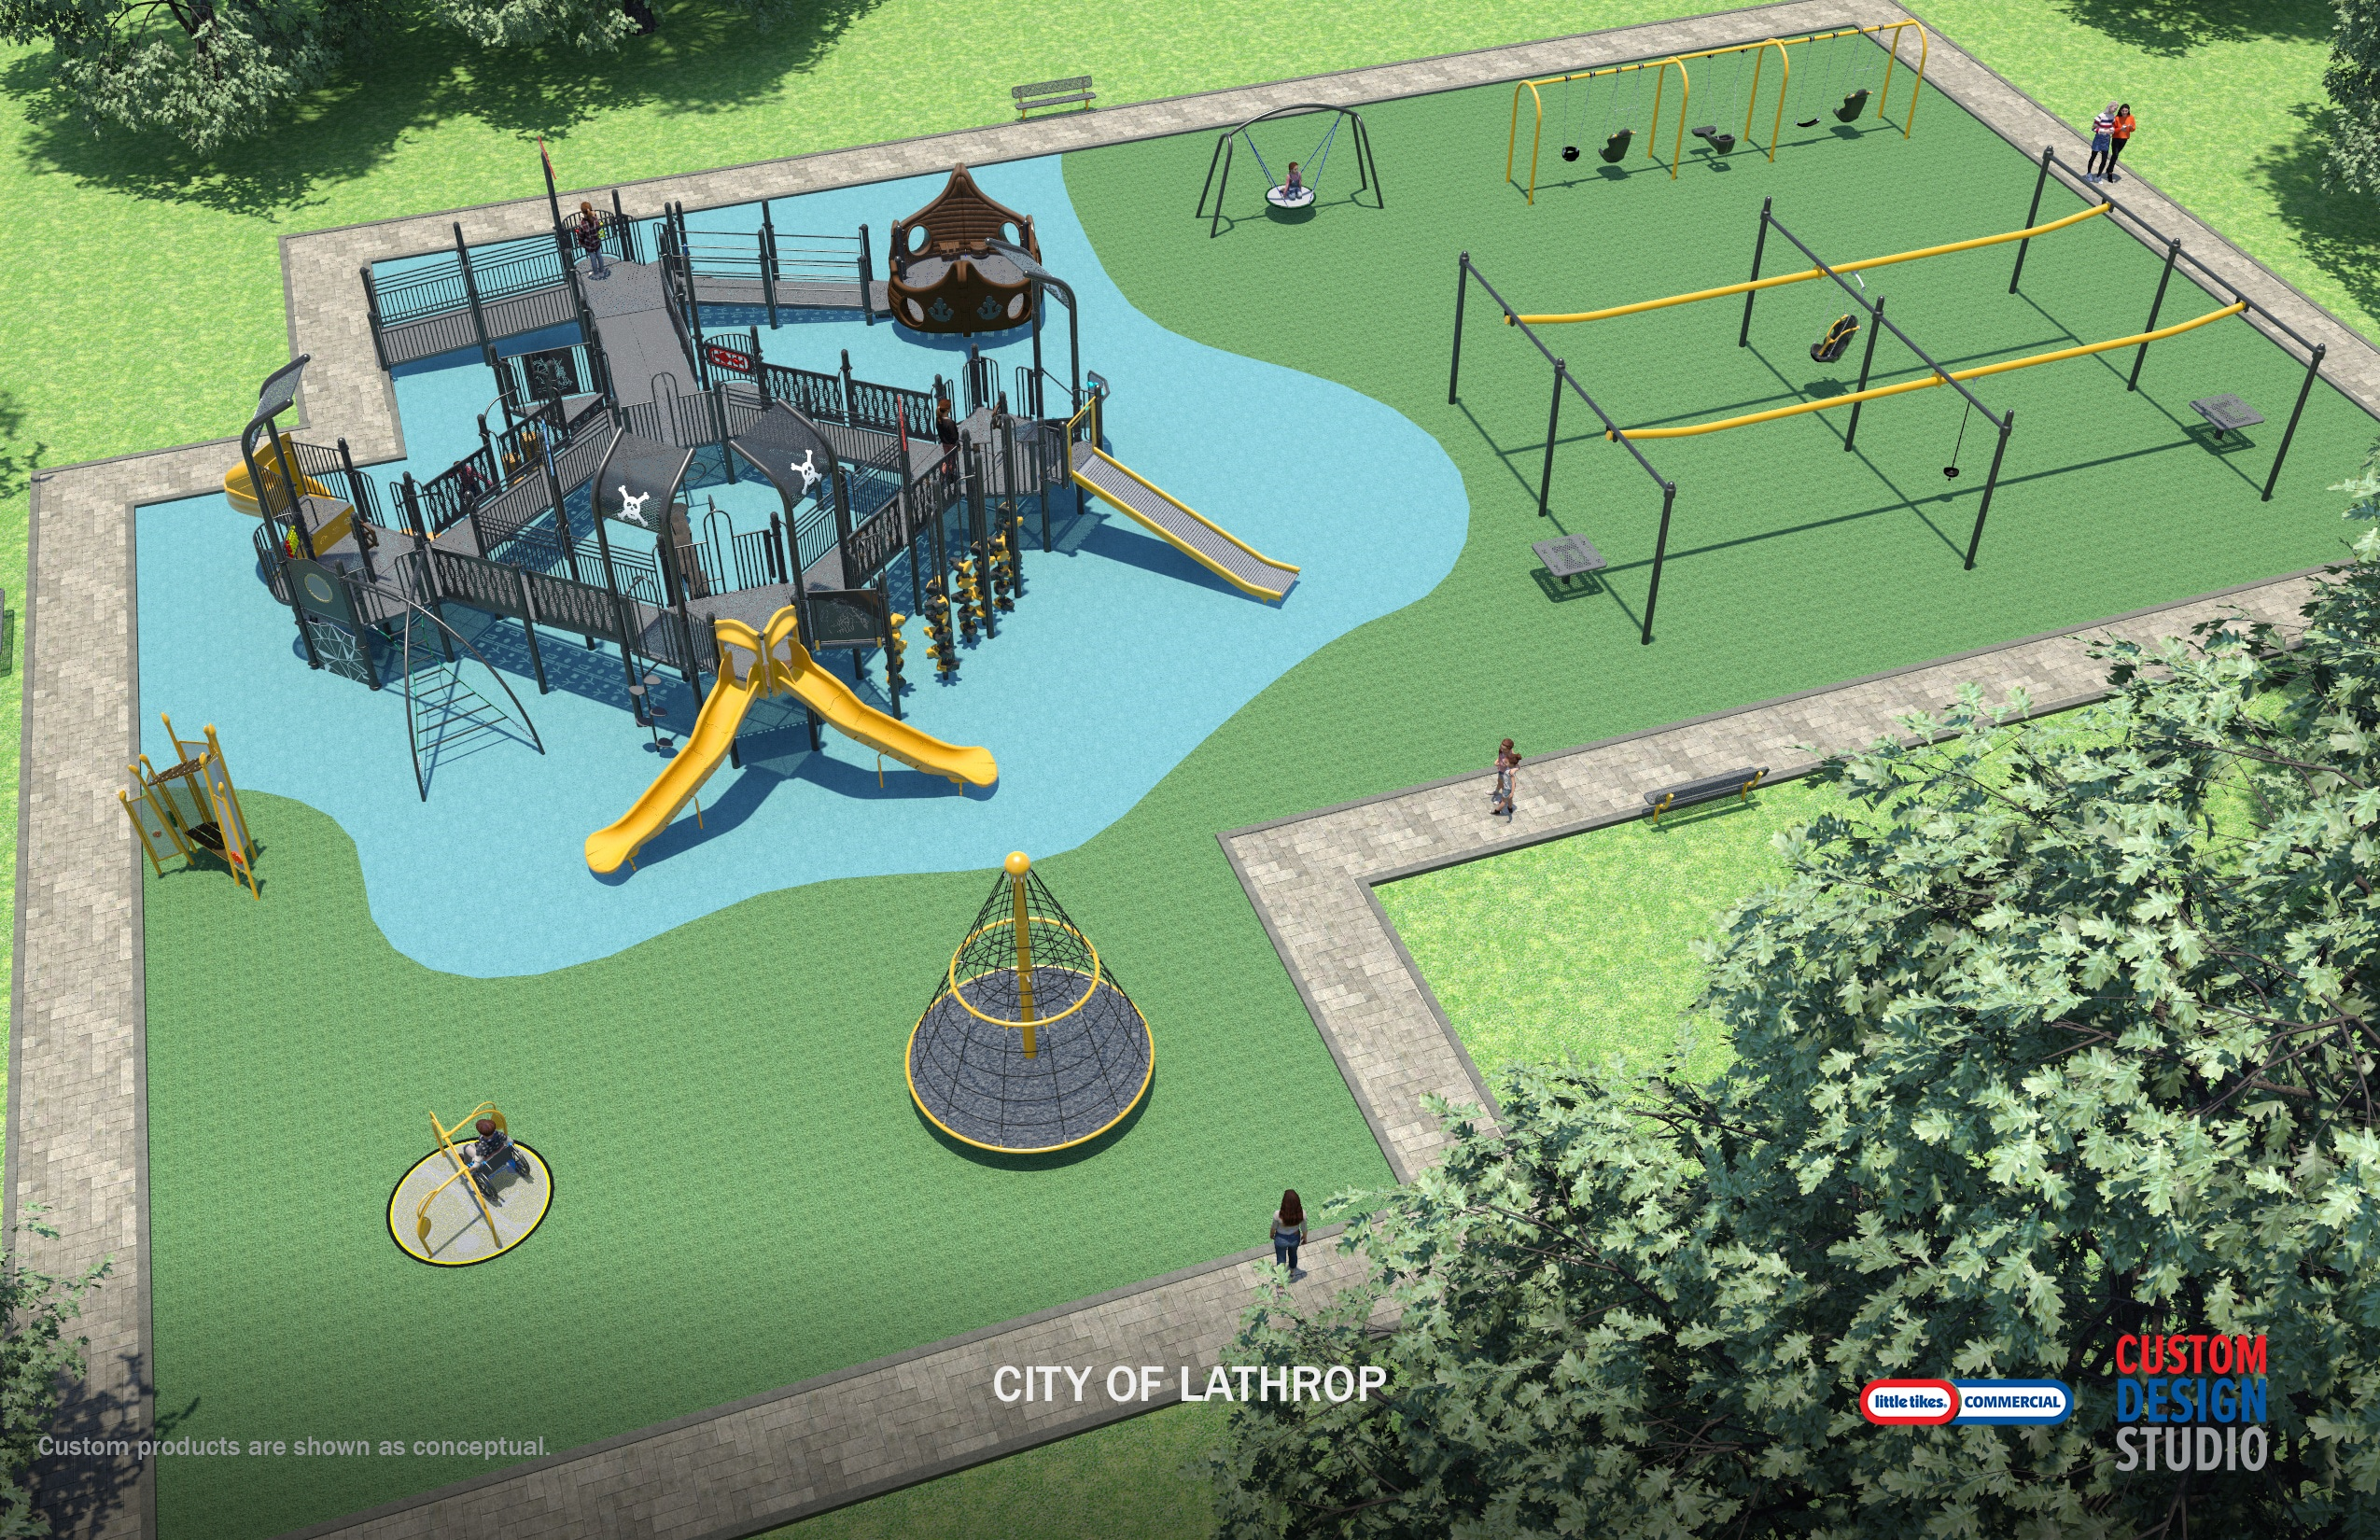 City of Lathrop Playground View